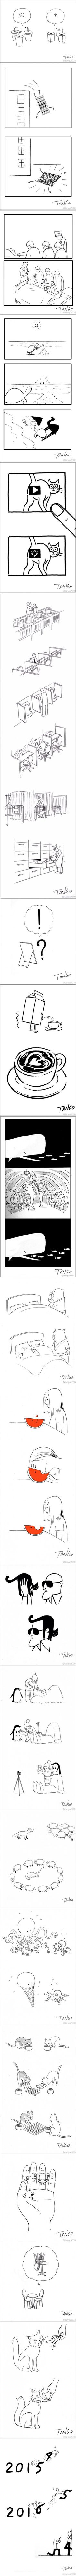 Funny minimalist comic strips                                                                                                                                                                                 More